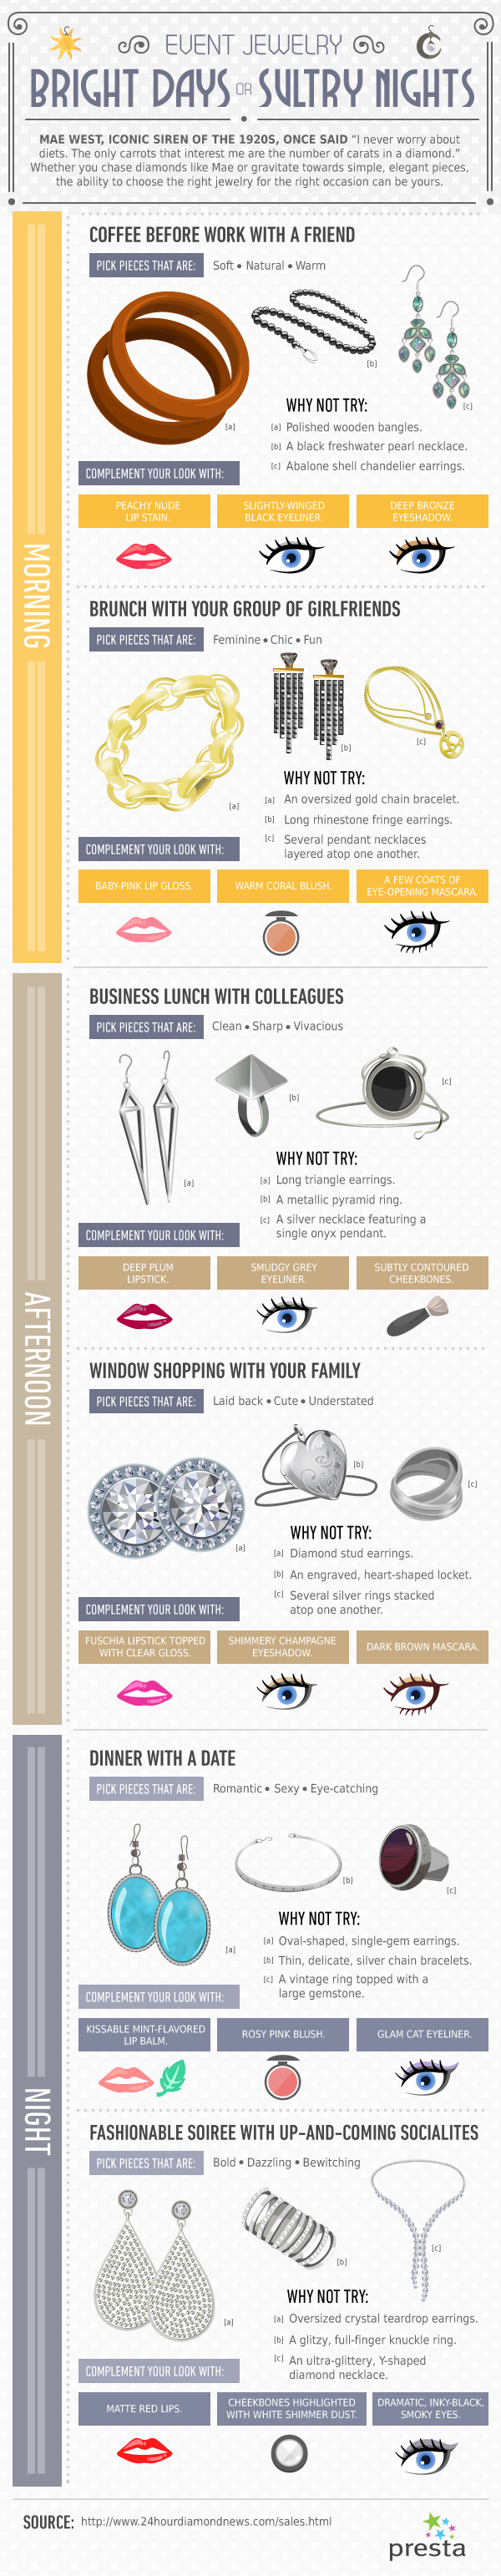 Fashion Tips With Jewelry and Makeup 32 Catchy Jewelry Slogans and Popular Taglines